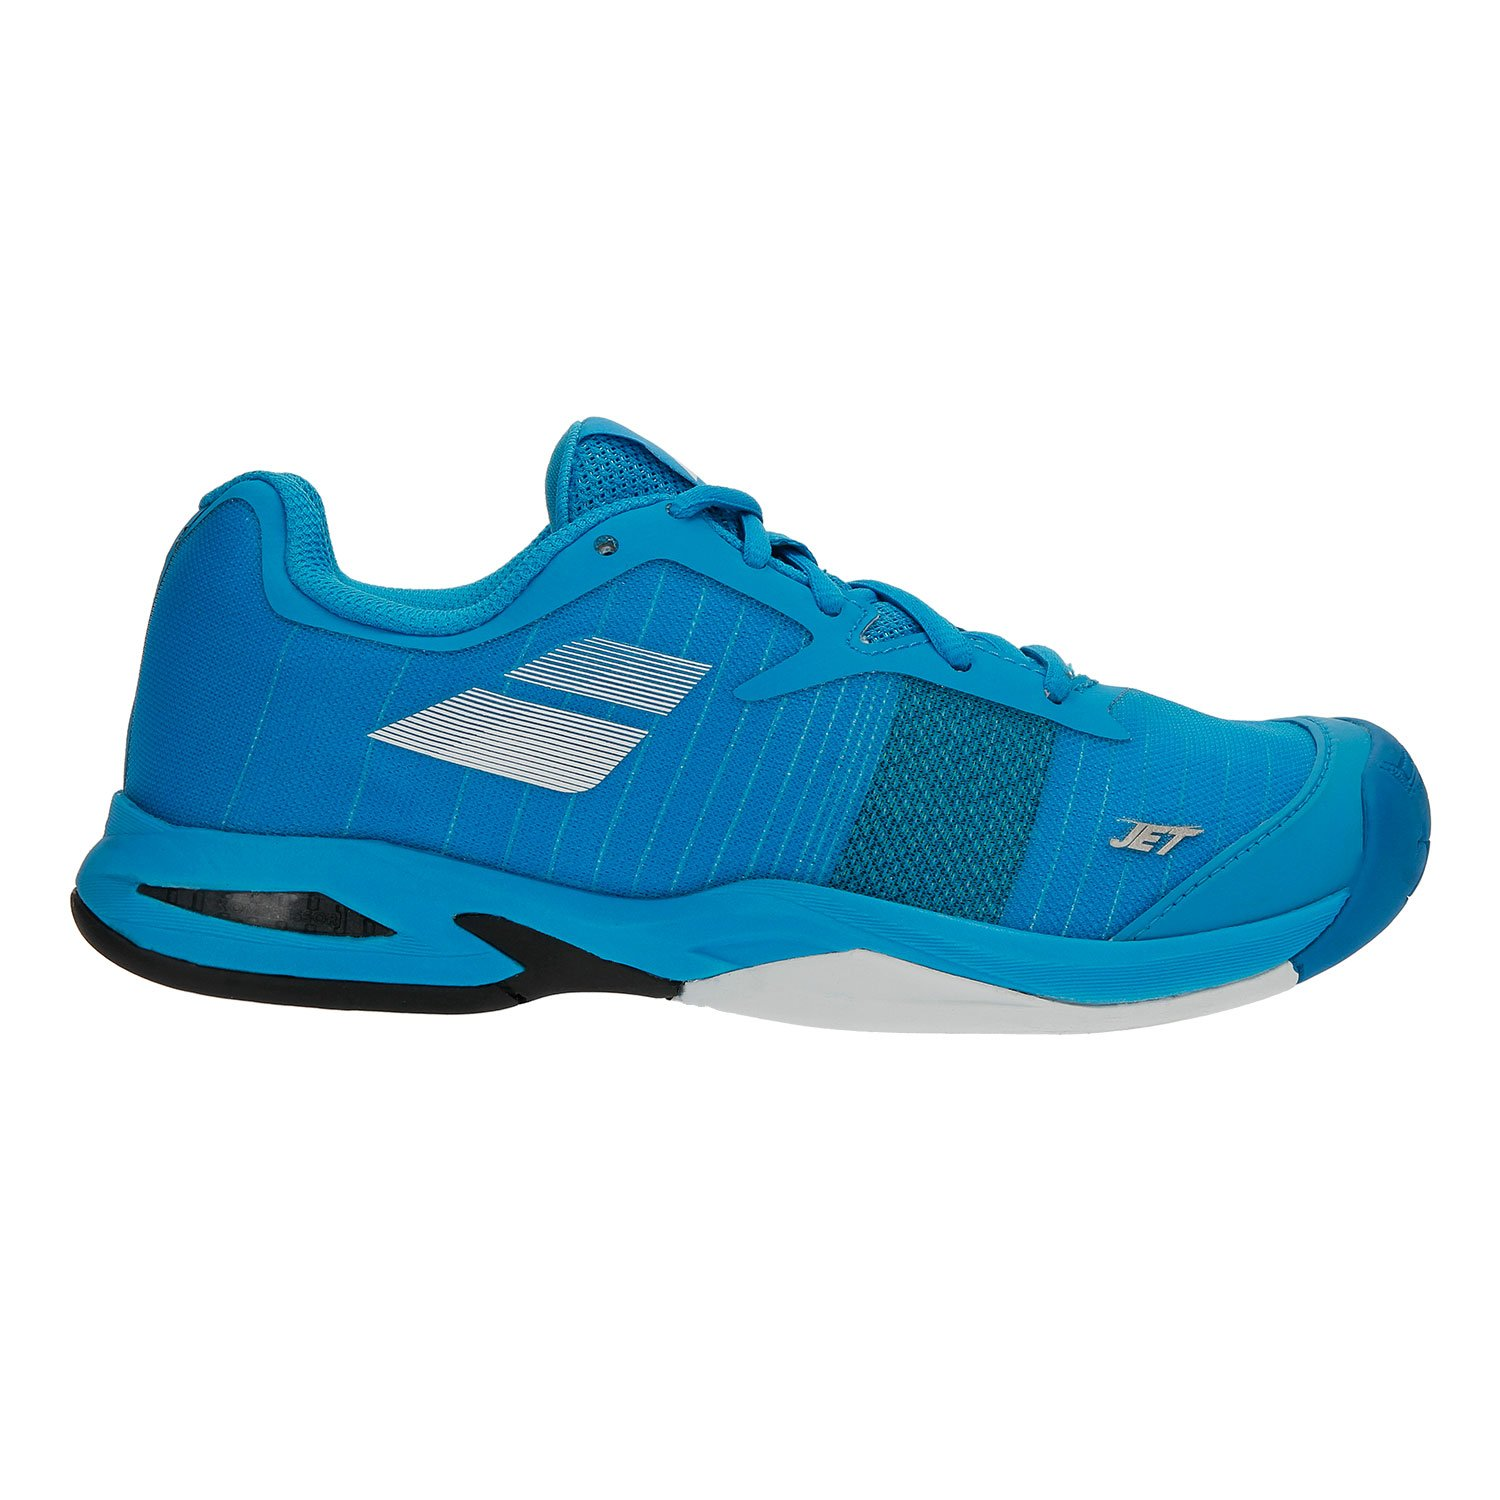 Babolat Juniors Jet All Court Tennis Shoes B0794CB41F Kid|Blue 4 M US Big Kid|Blue B0794CB41F 9b62b1